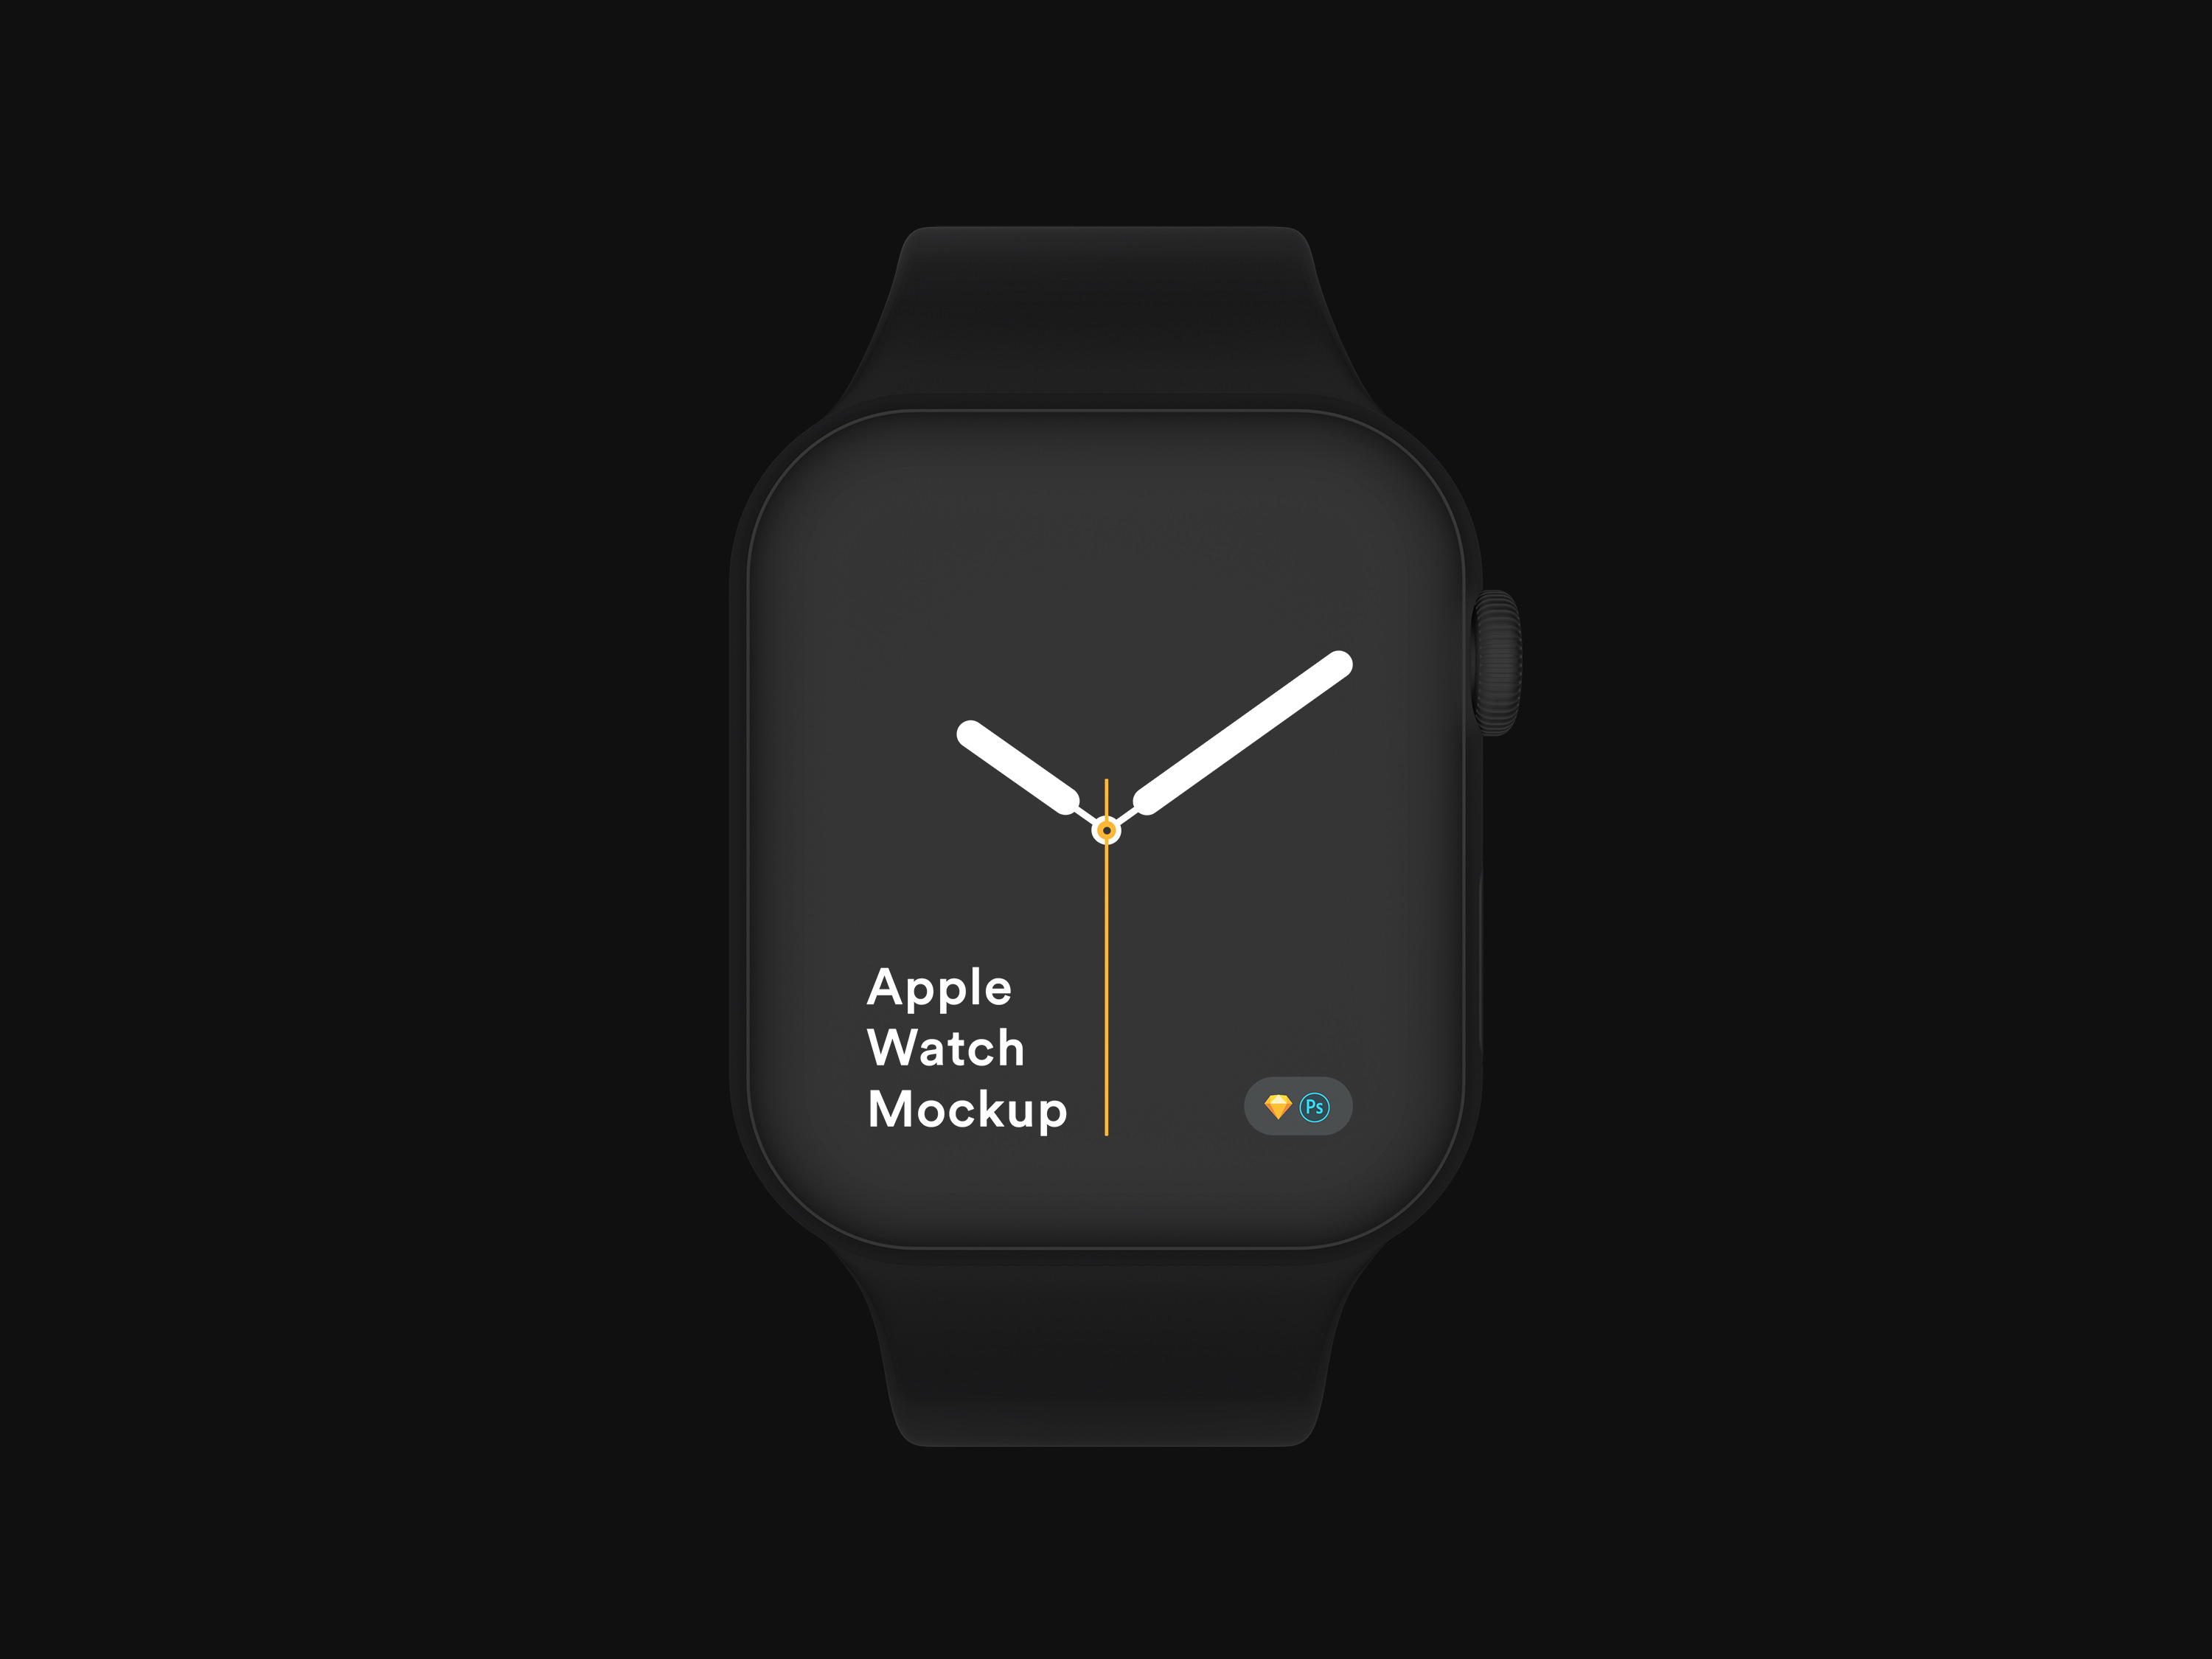 Download Apple Watch 4 Mockup for Sketch and Photoshop